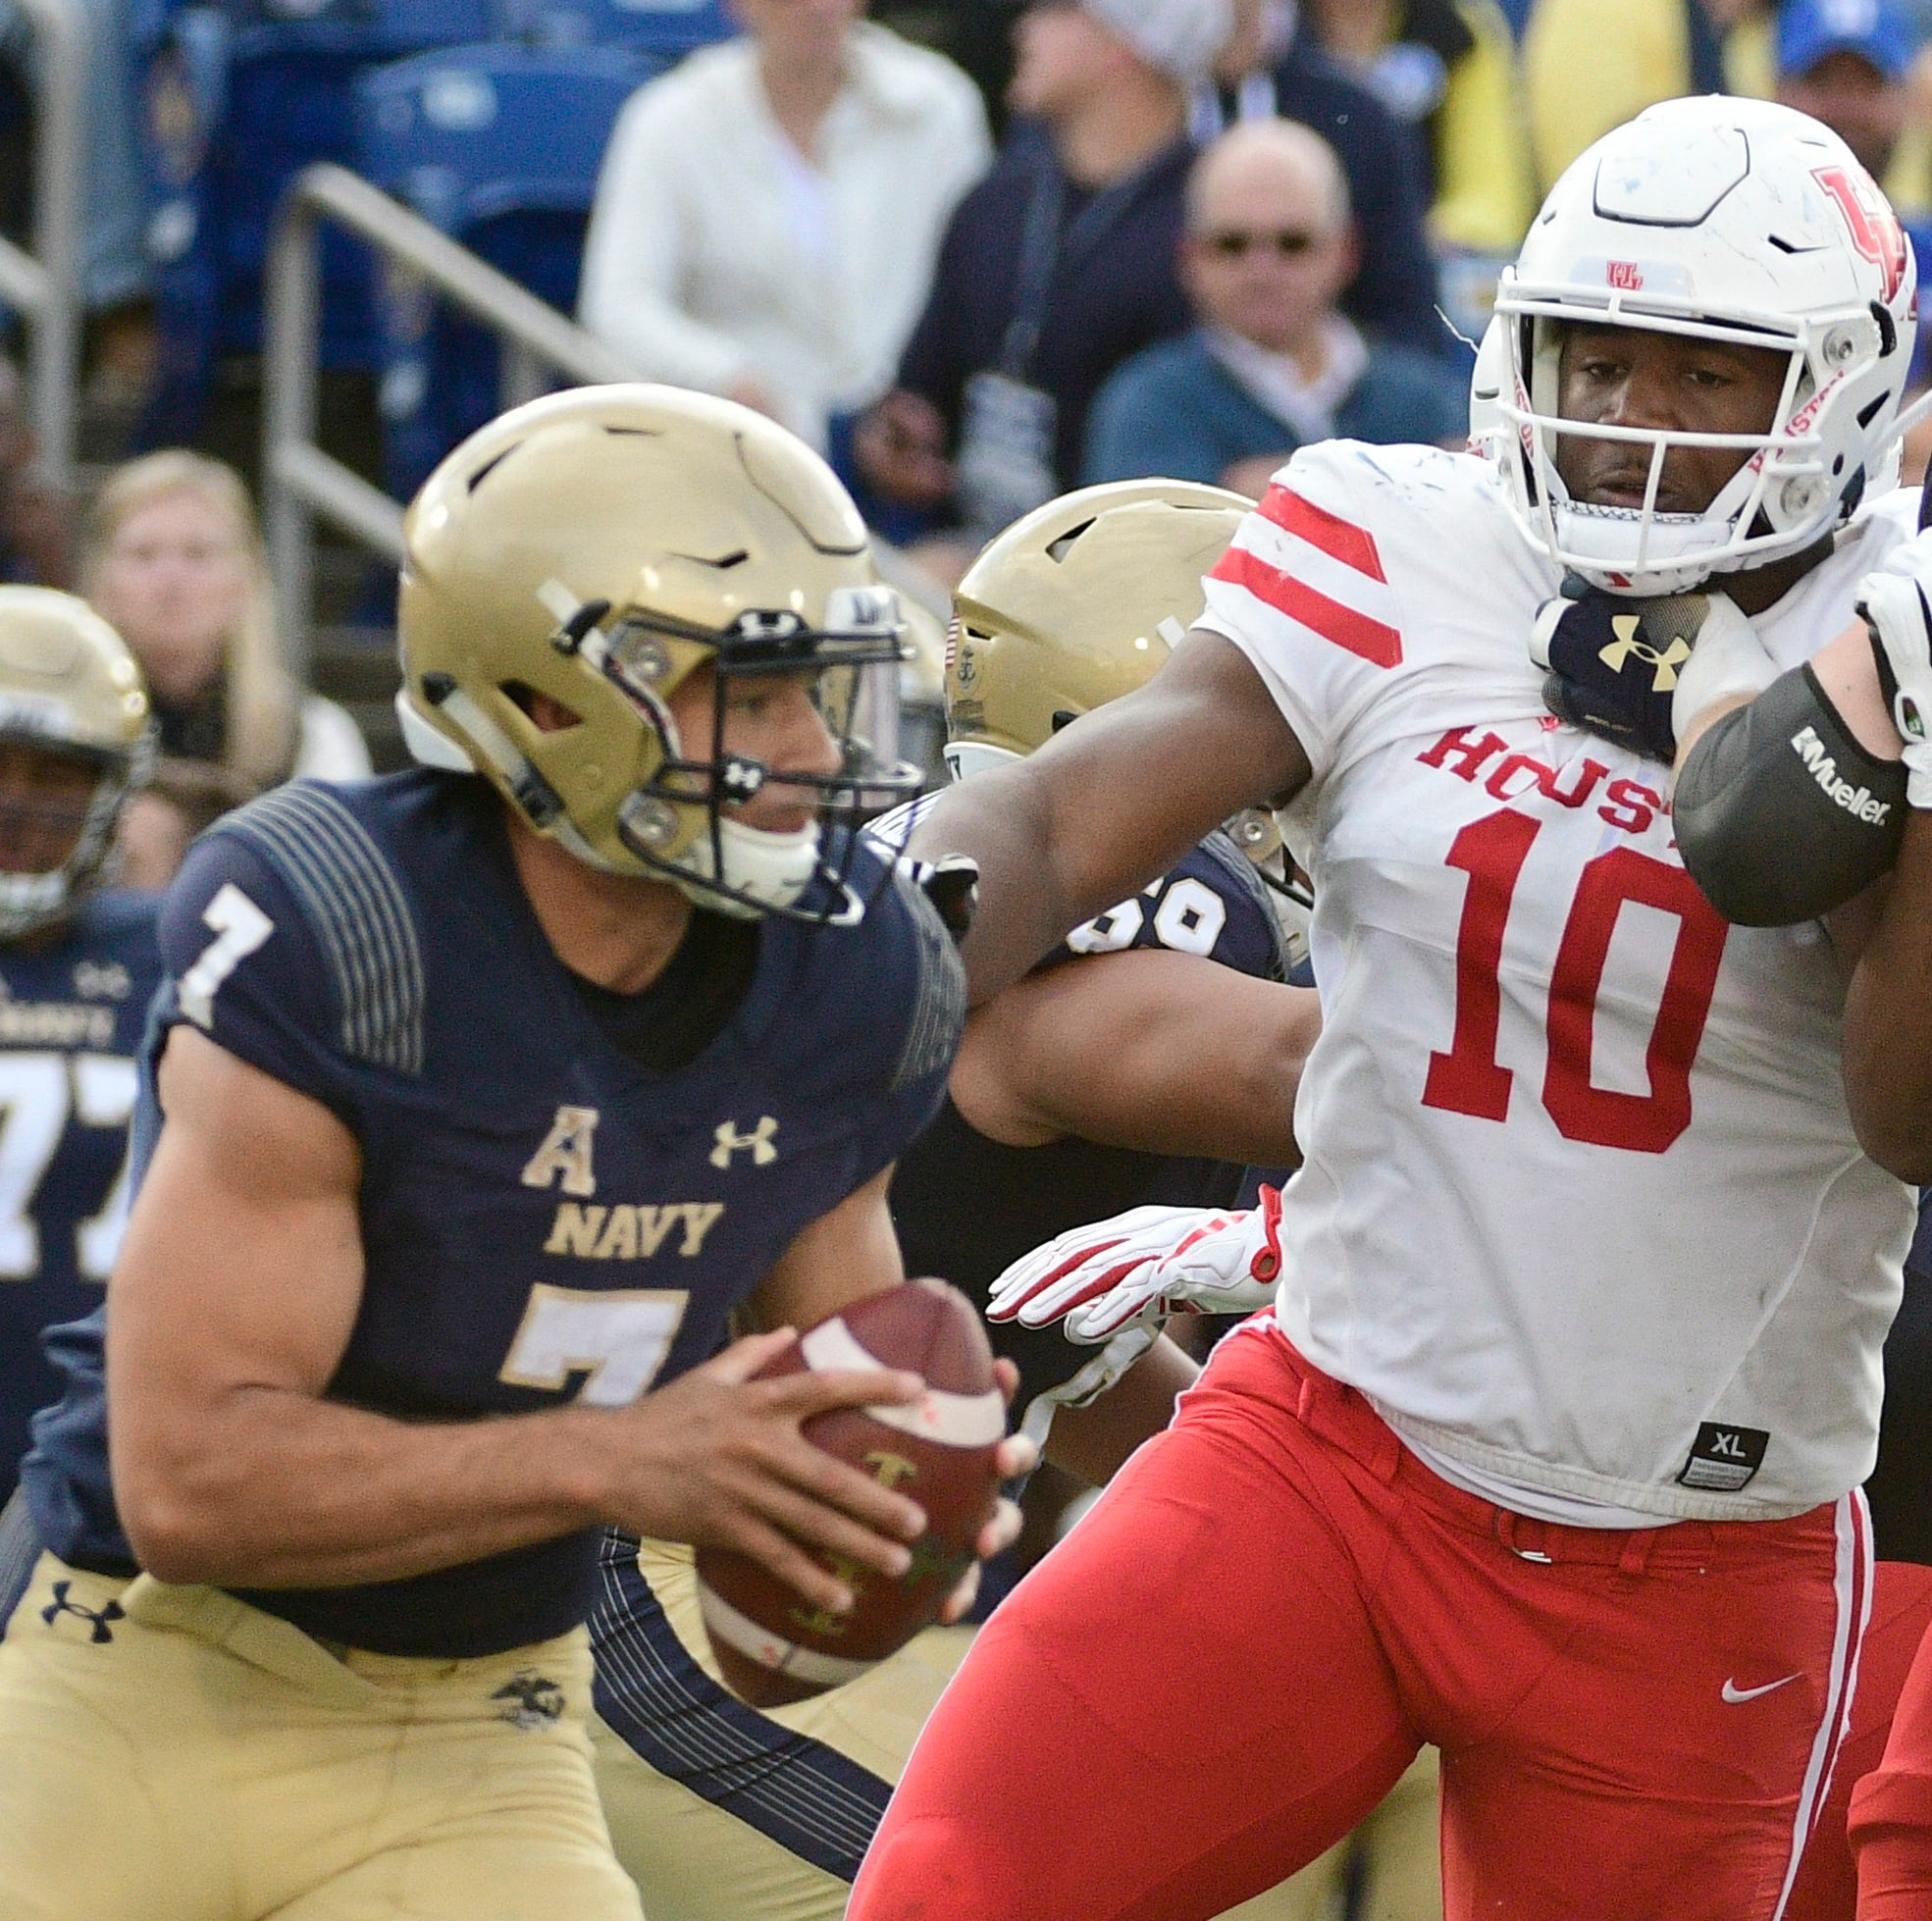 Houston's Ed Oliver could be Buffalo Bills target in first round of NFL Draft